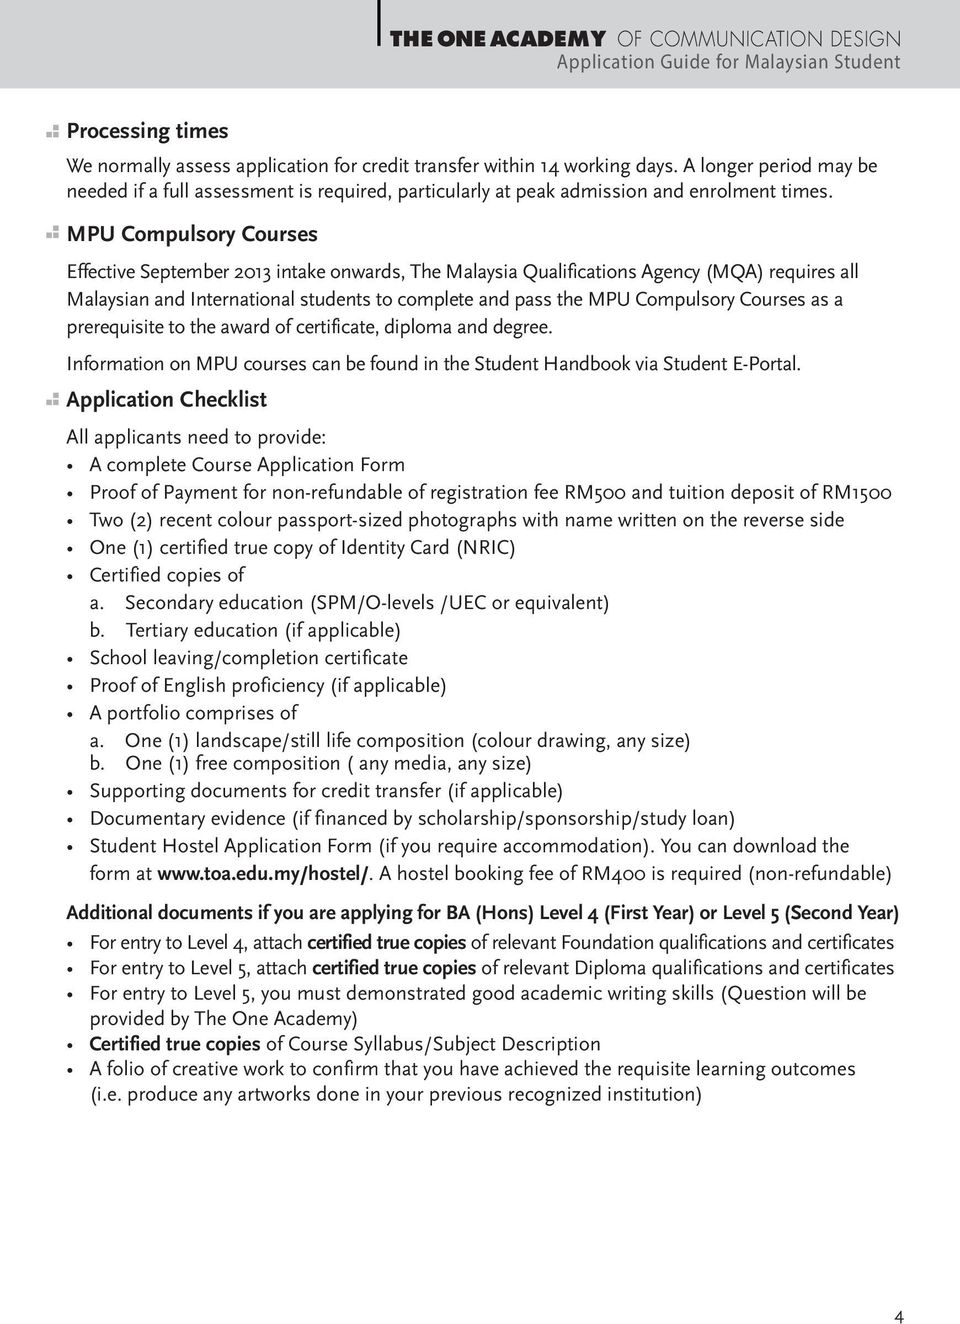 MPU Compulsory Courses Effective September 2013 intake onwards, The Malaysia Qualifications Agency (MQA) requires all Malaysian and International students to complete and pass the MPU Compulsory